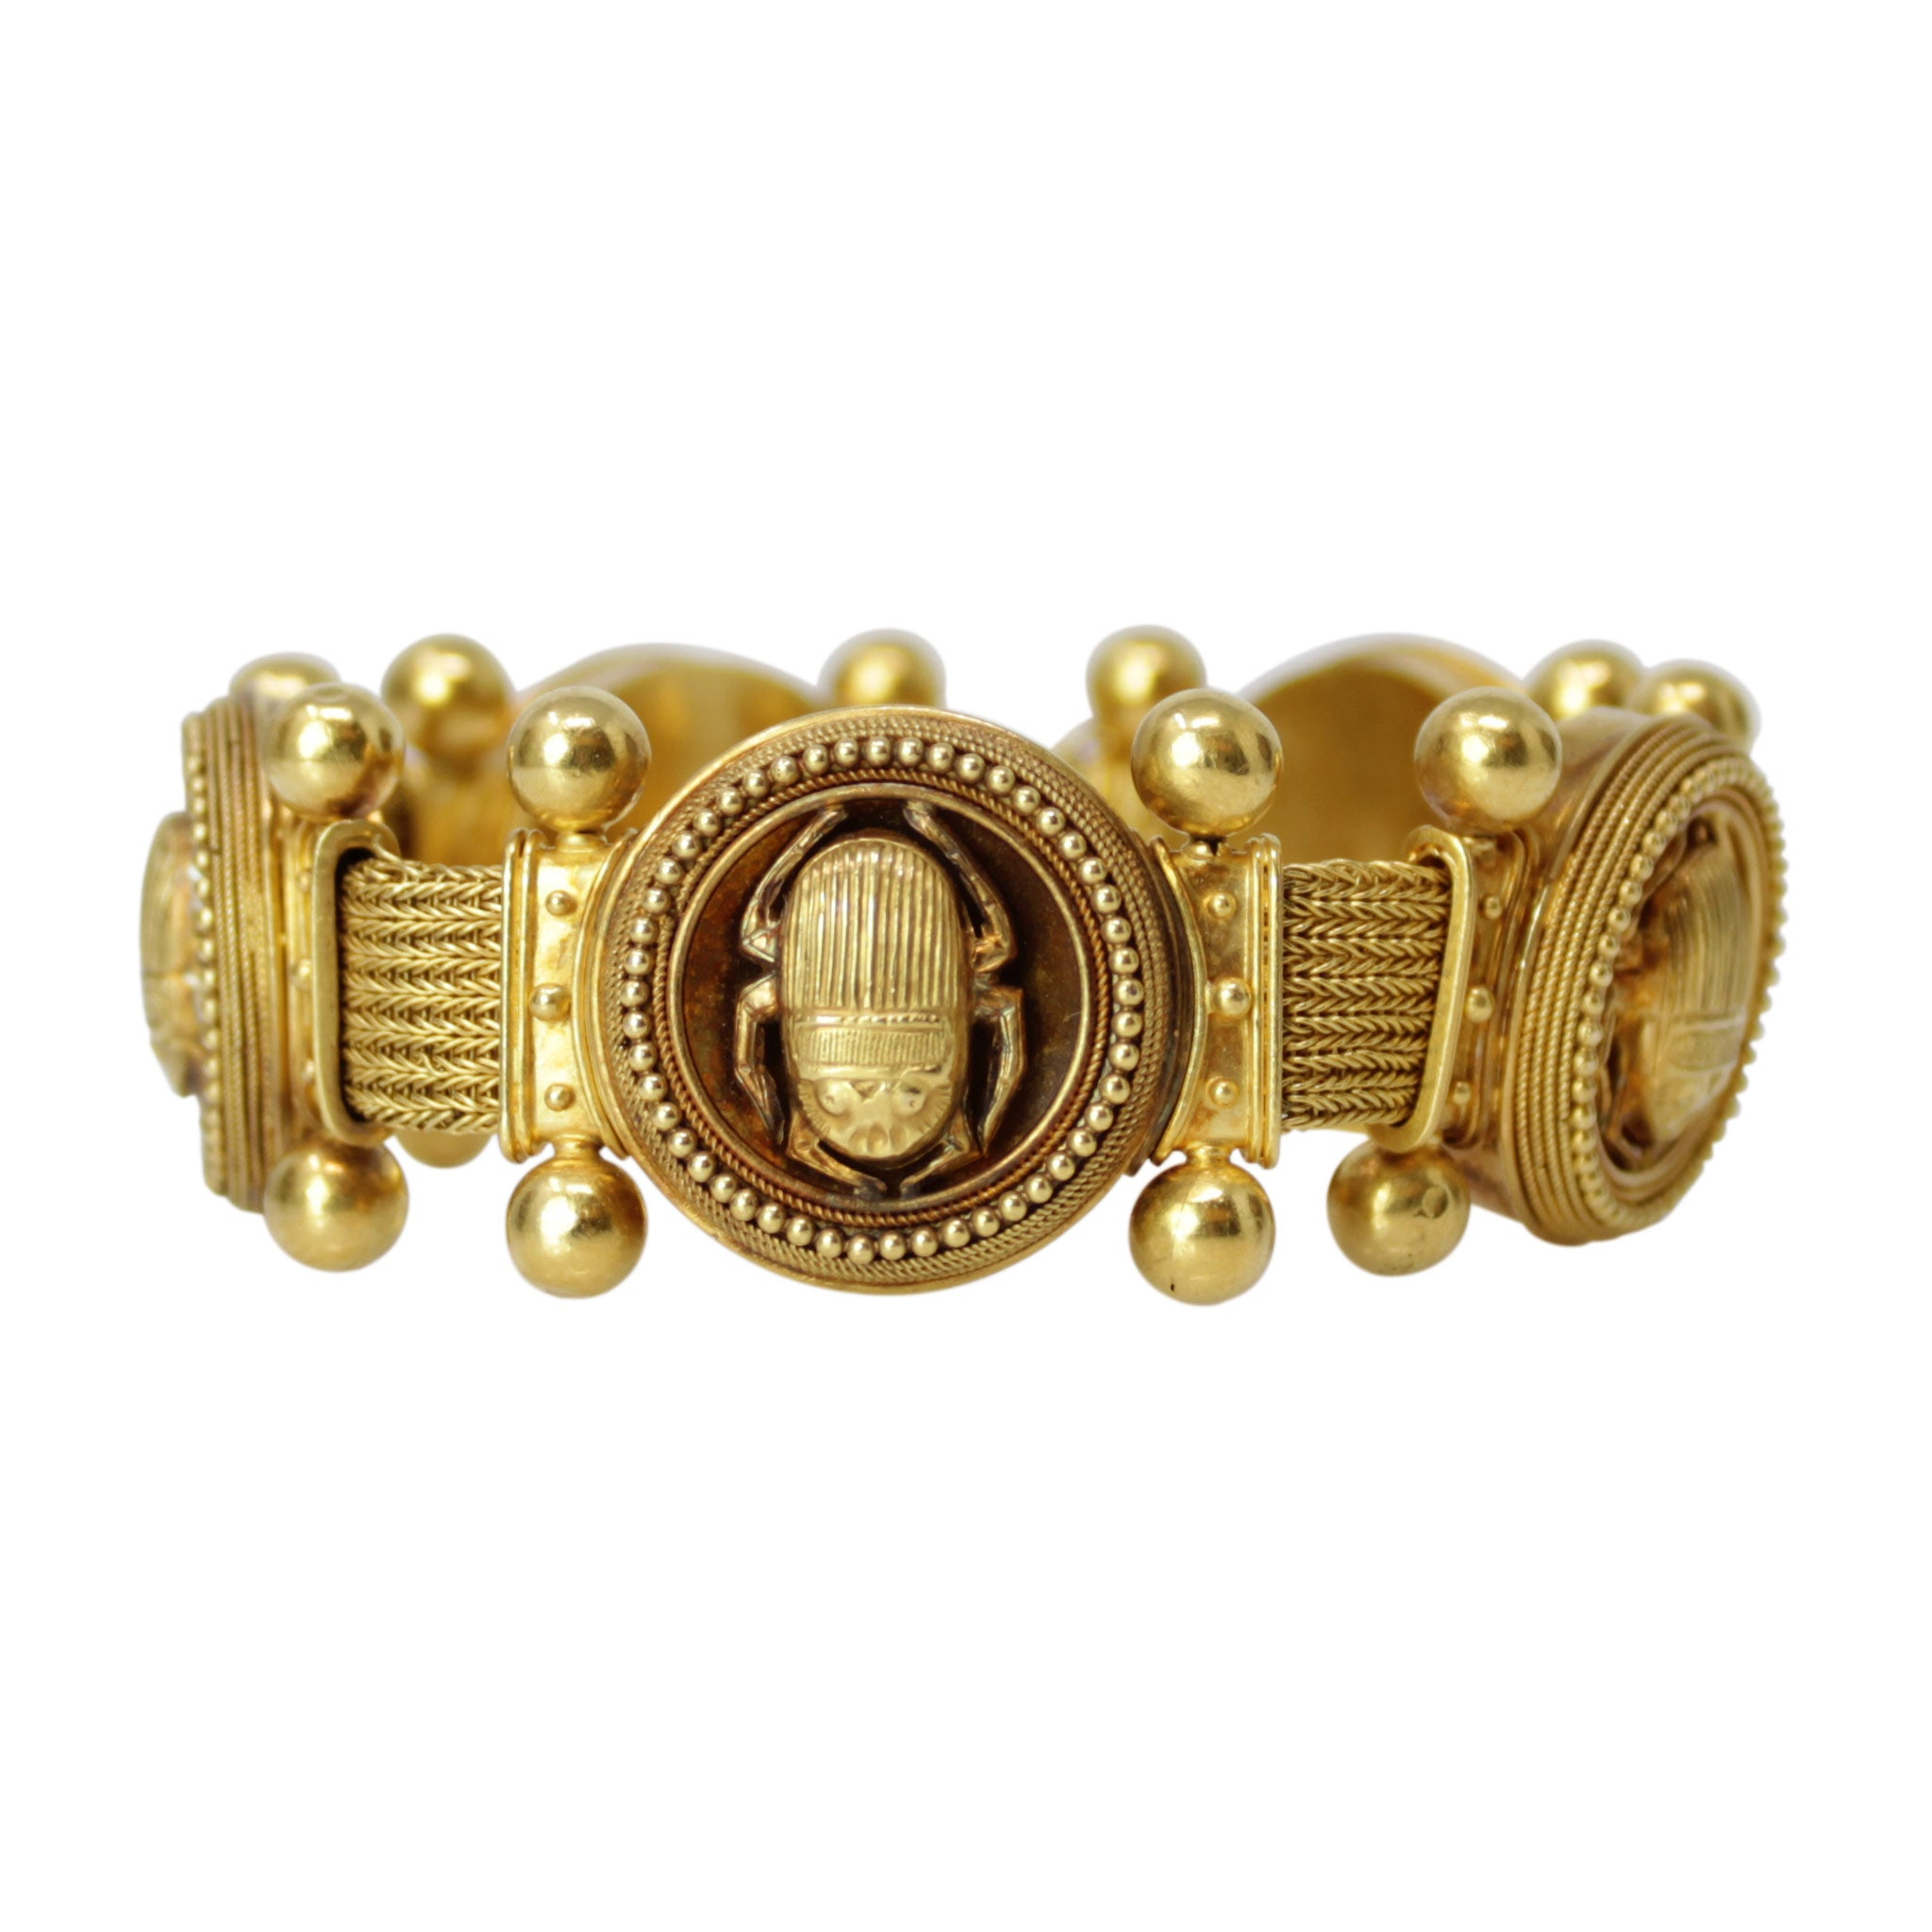 Immortal Egyptian Princess Bracelet - Scarab Beetle 18k Yellow Gold Egyptian Bracelet